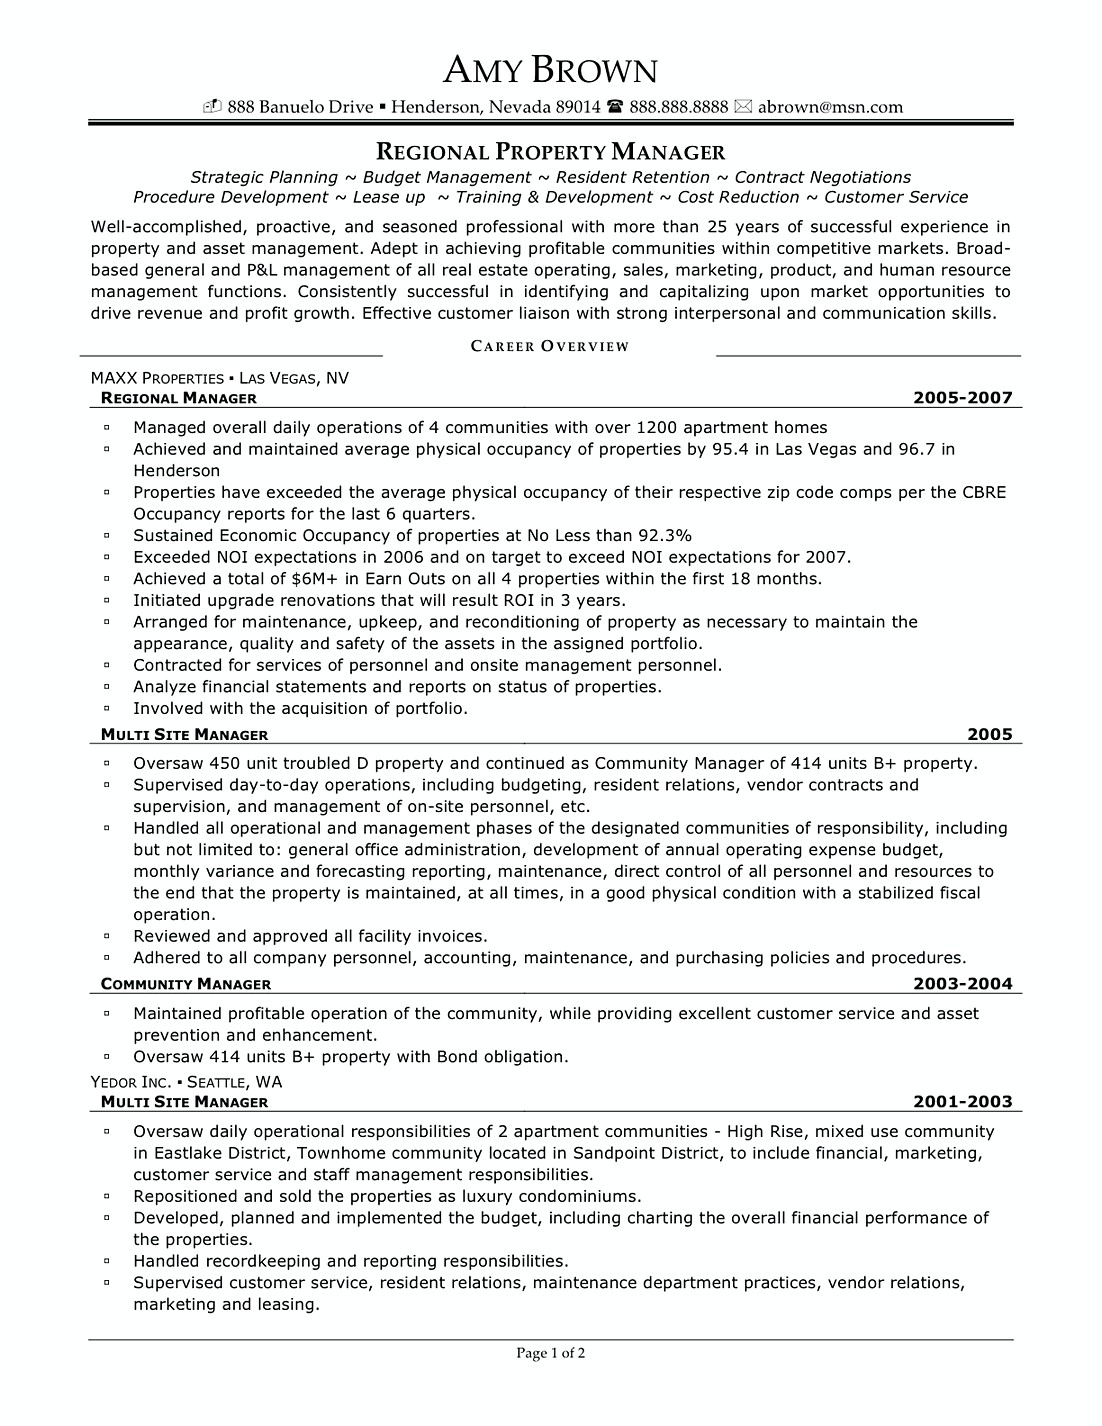 regional it manager resume template